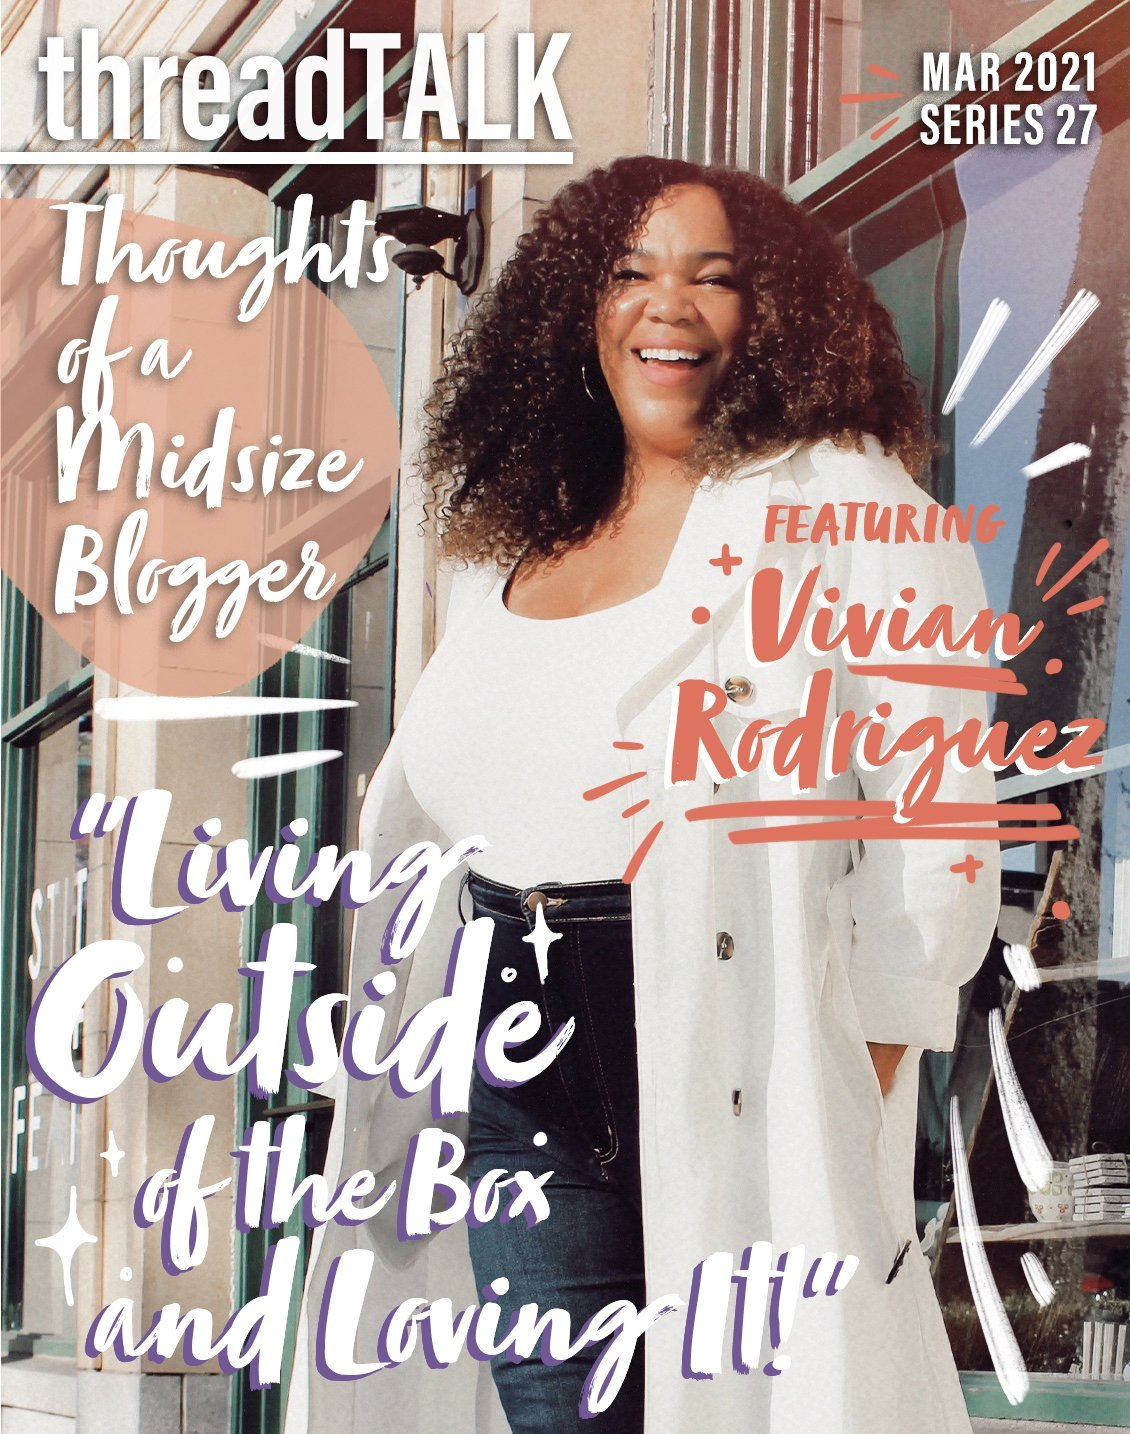 threadTALK Blog Series 27: Thoughts of a Midsize Influencer with Vivian Rodriguez | Stories You Can Wear by Thread Tank